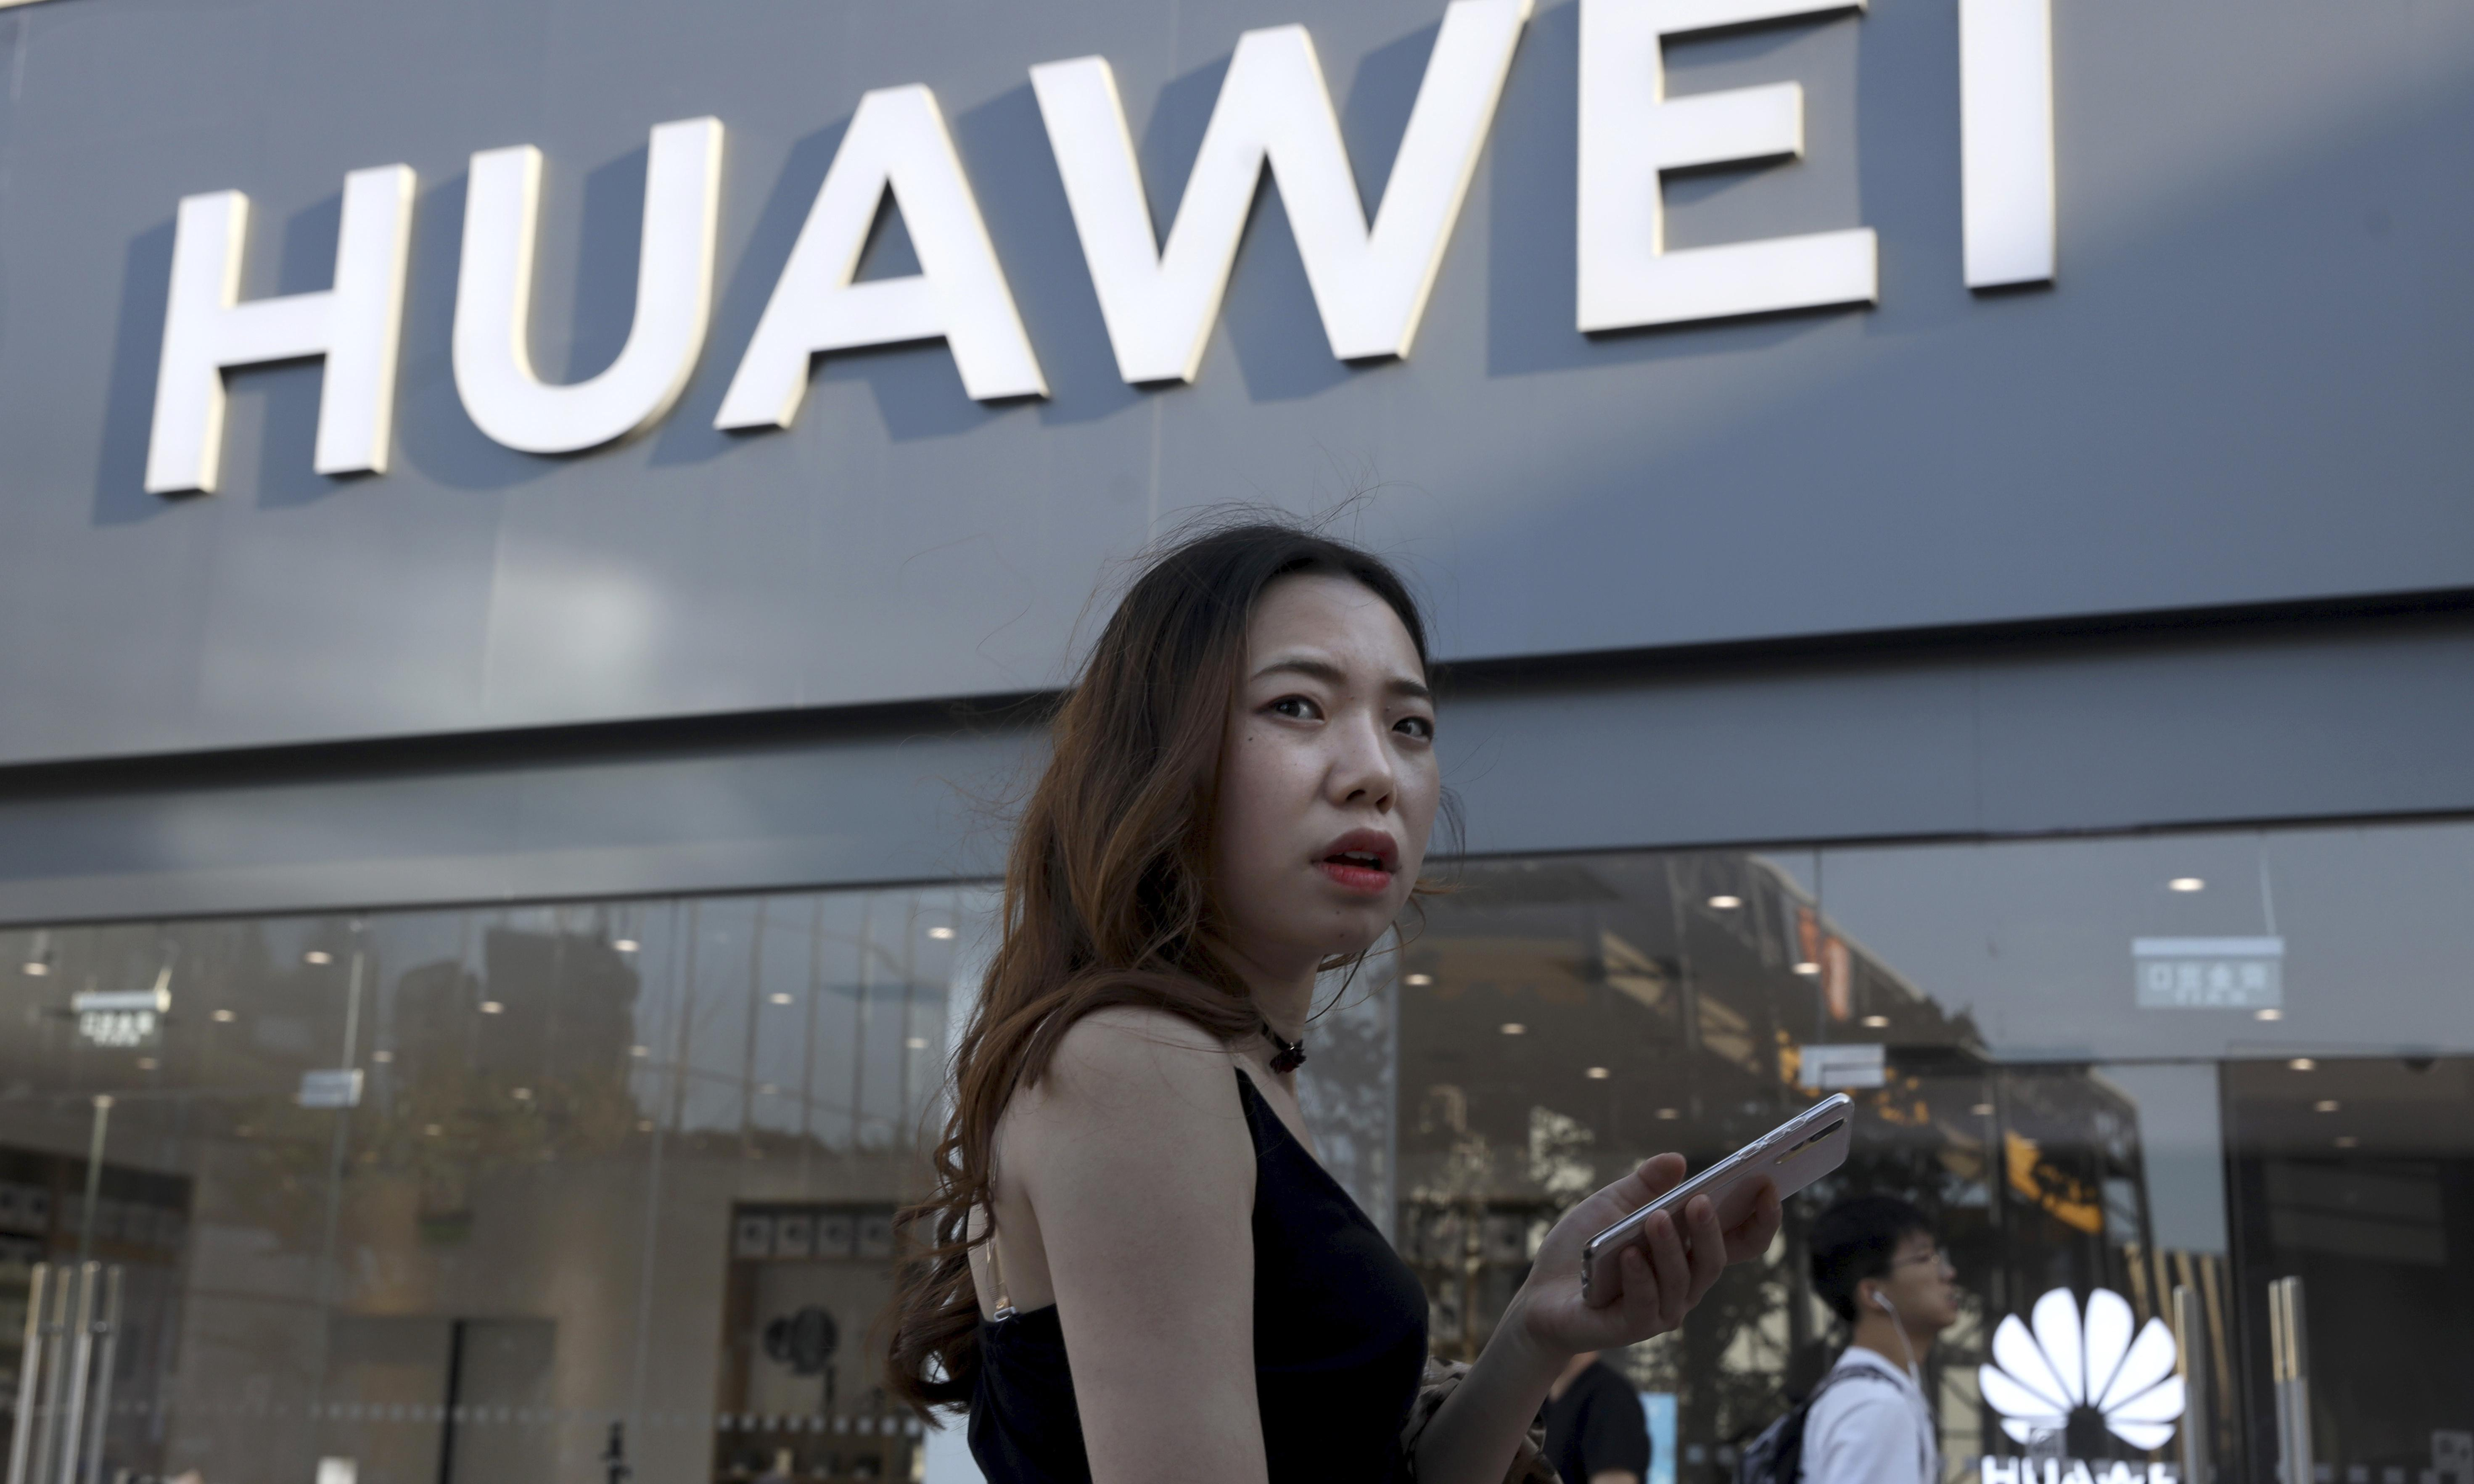 Google blocks Huawei access to Android updates after blacklisting